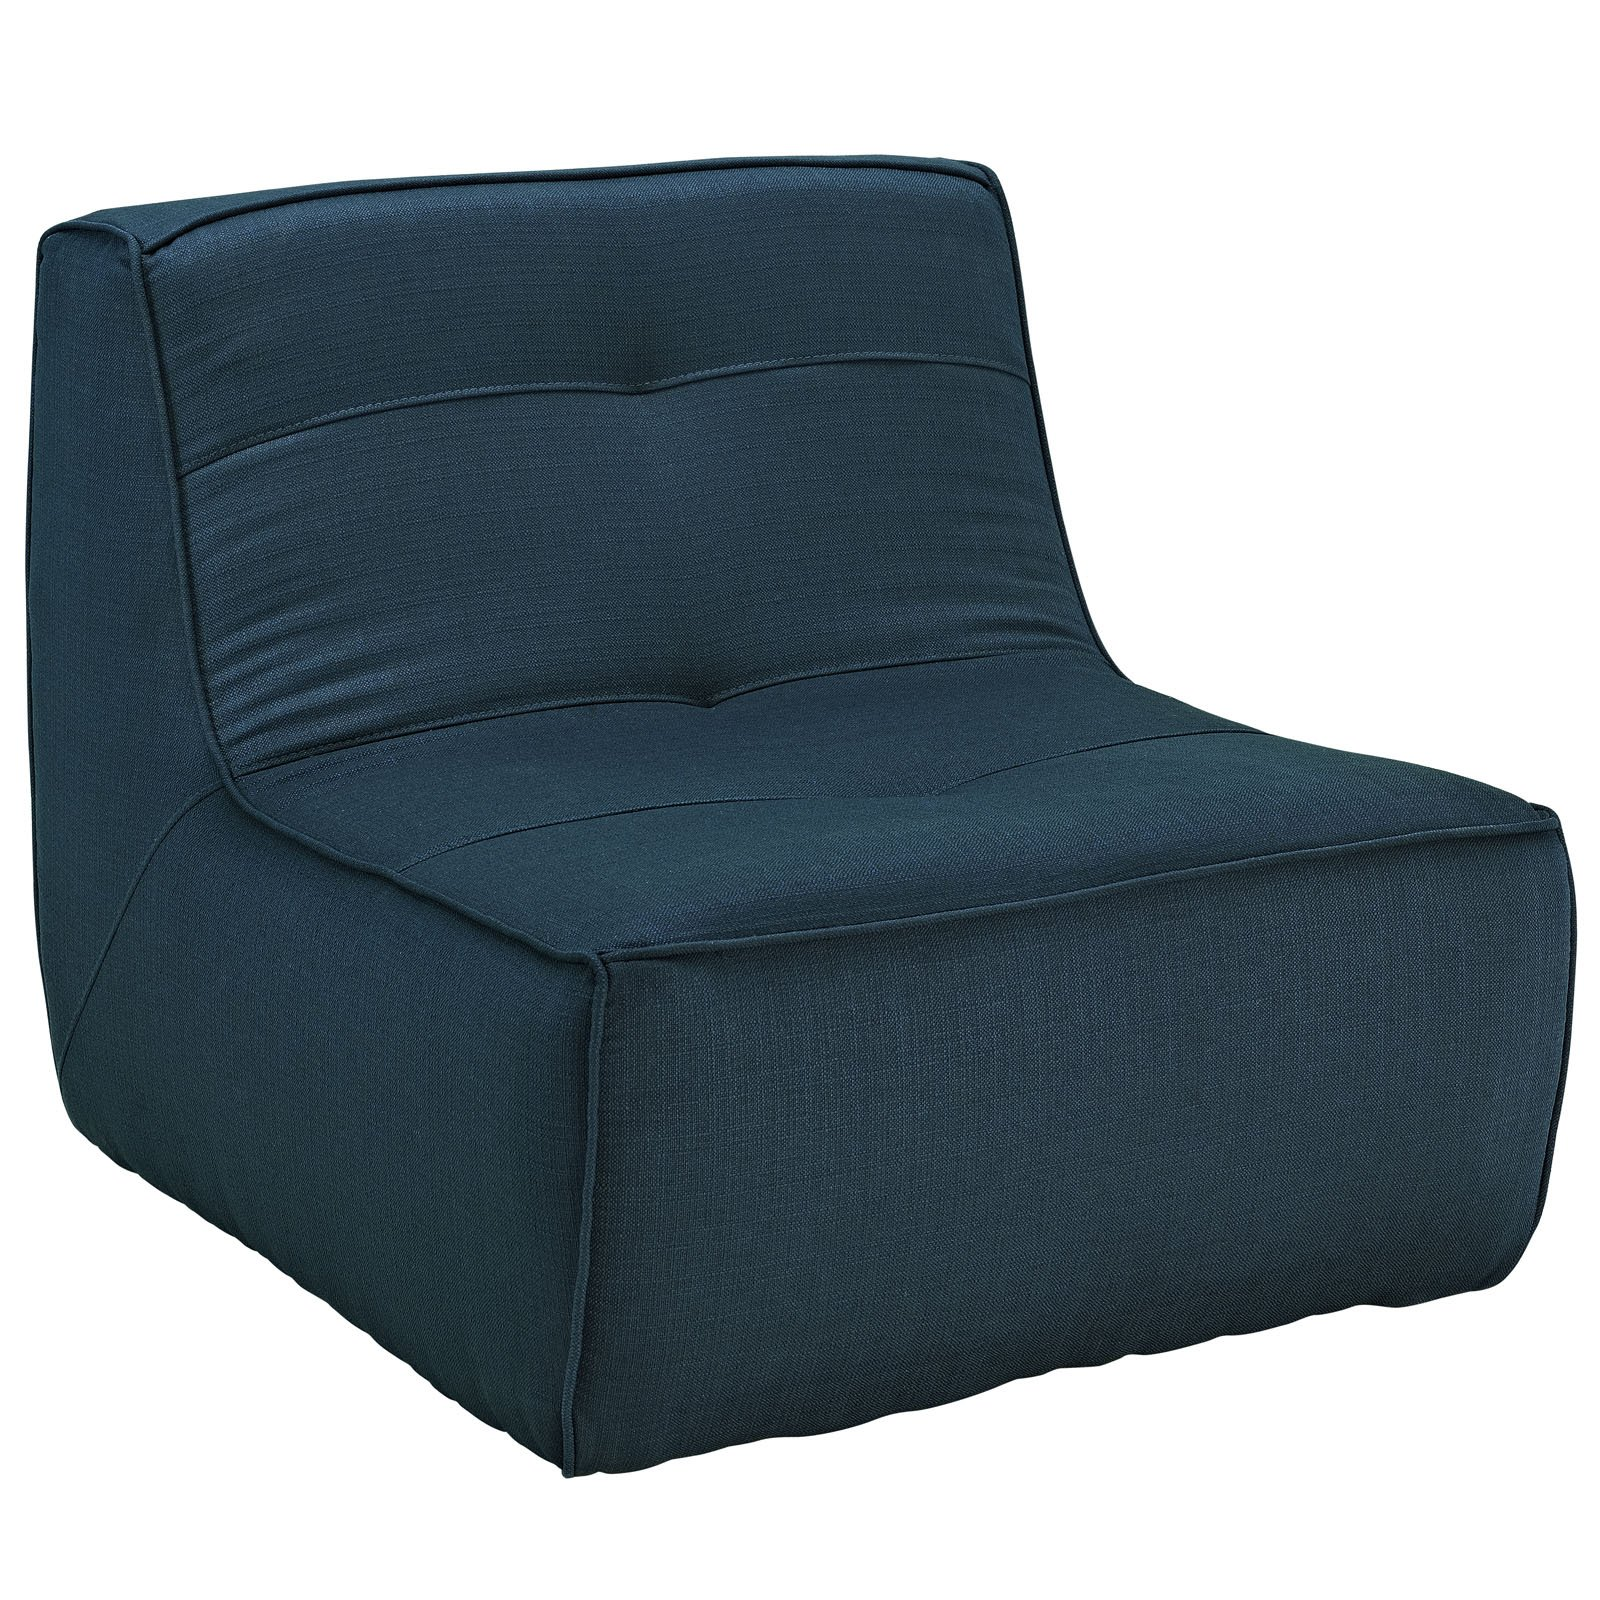 Modway Align Upholstered Armchair in Azure